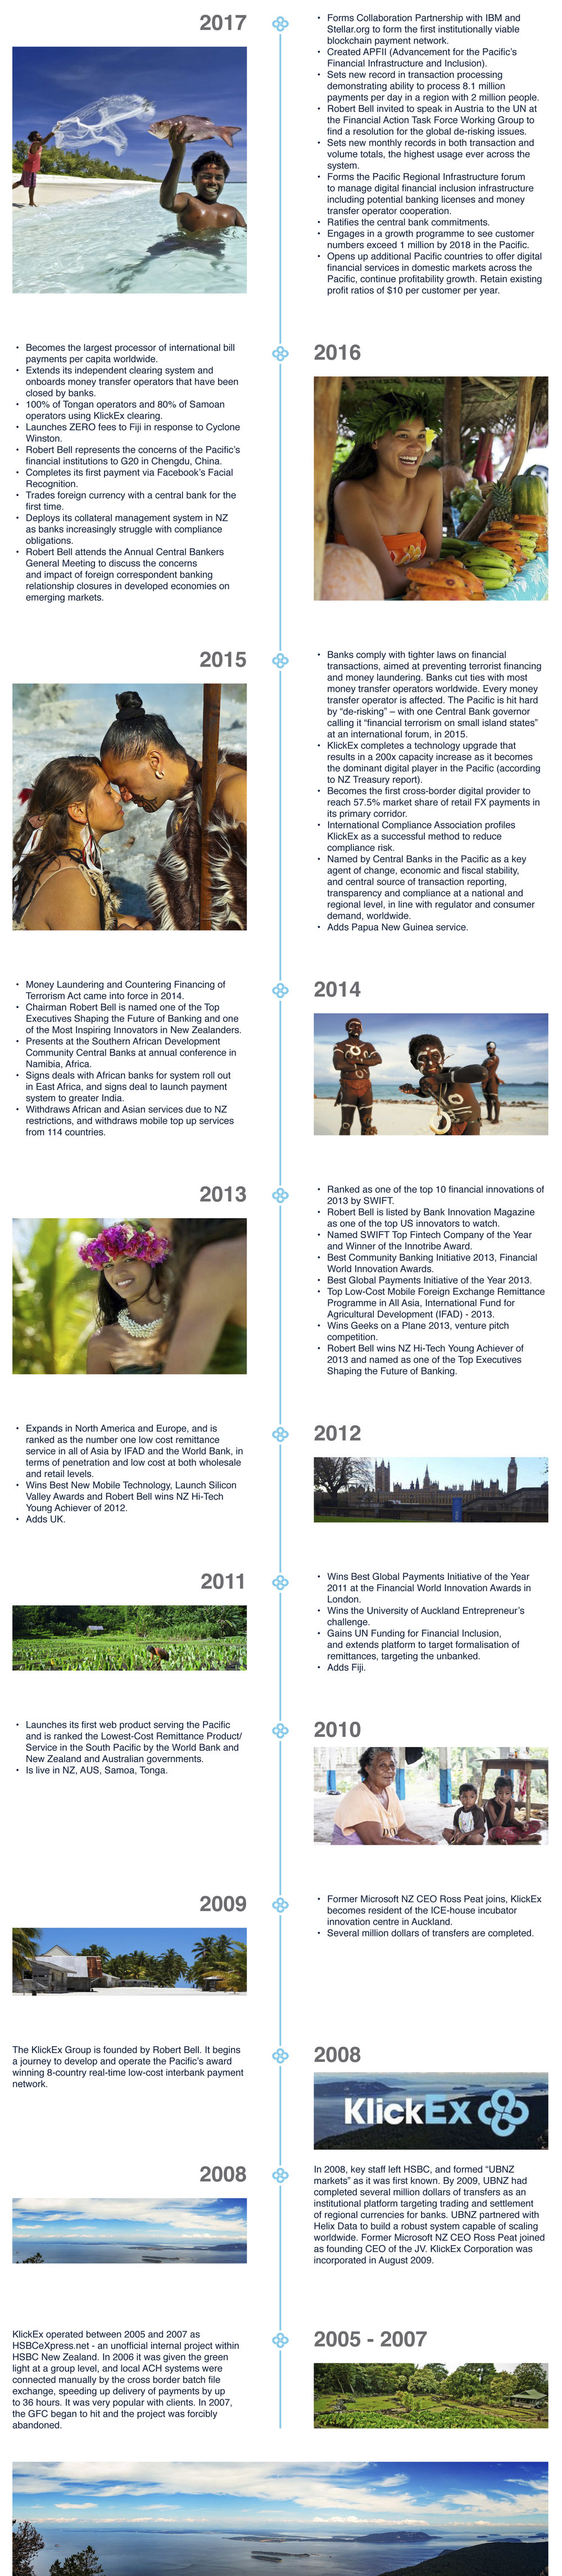 KlickEx Timeline image for website updated Oct17websize.jpg